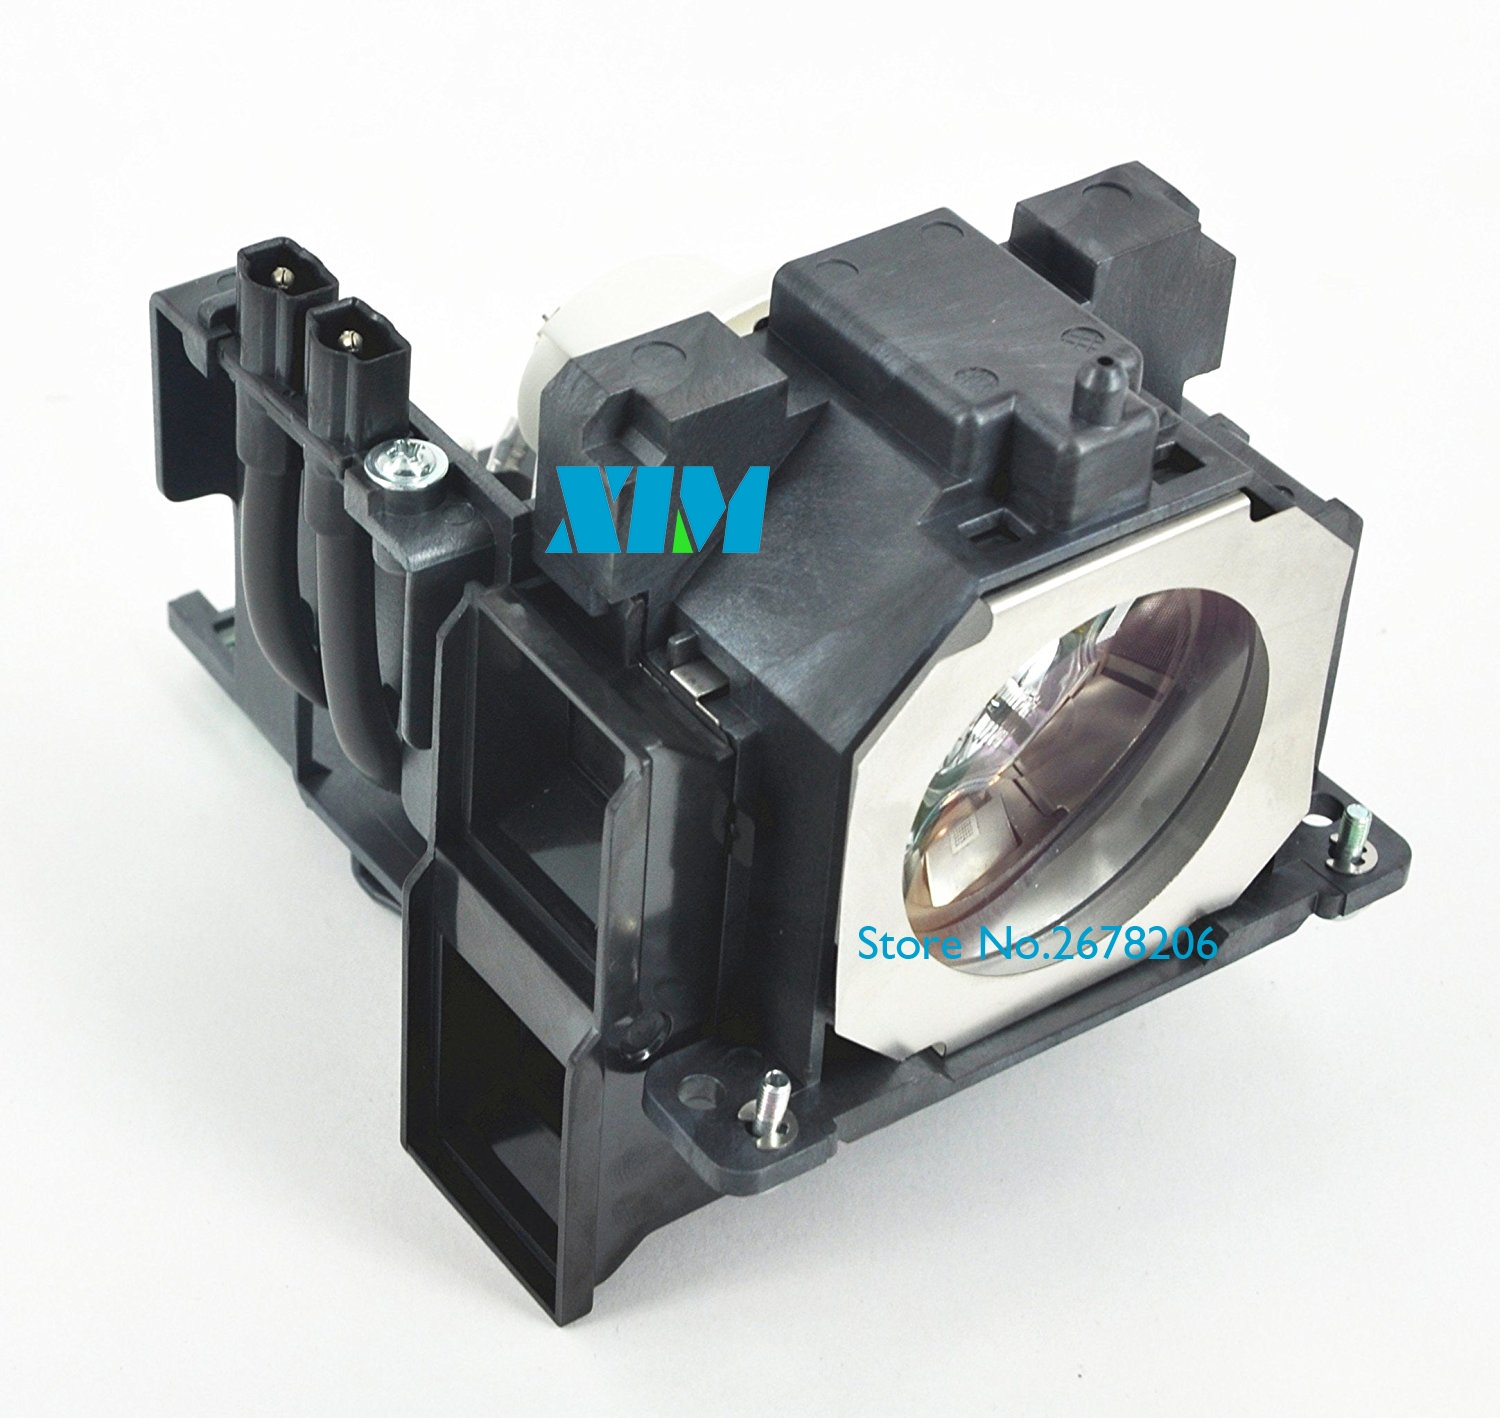 Free Shipping ET-LAE300C ET-LAE300  Projector lamp with housing for Panasonic PT-EX510 PT-EZ580 PT-EX610 PT-SLZ77C/CL PT-Z770ZL original projector lamp et lab80 for pt lb75 pt lb75nt pt lb80 pt lw80nt pt lb75ntu pt lb75u pt lb80u